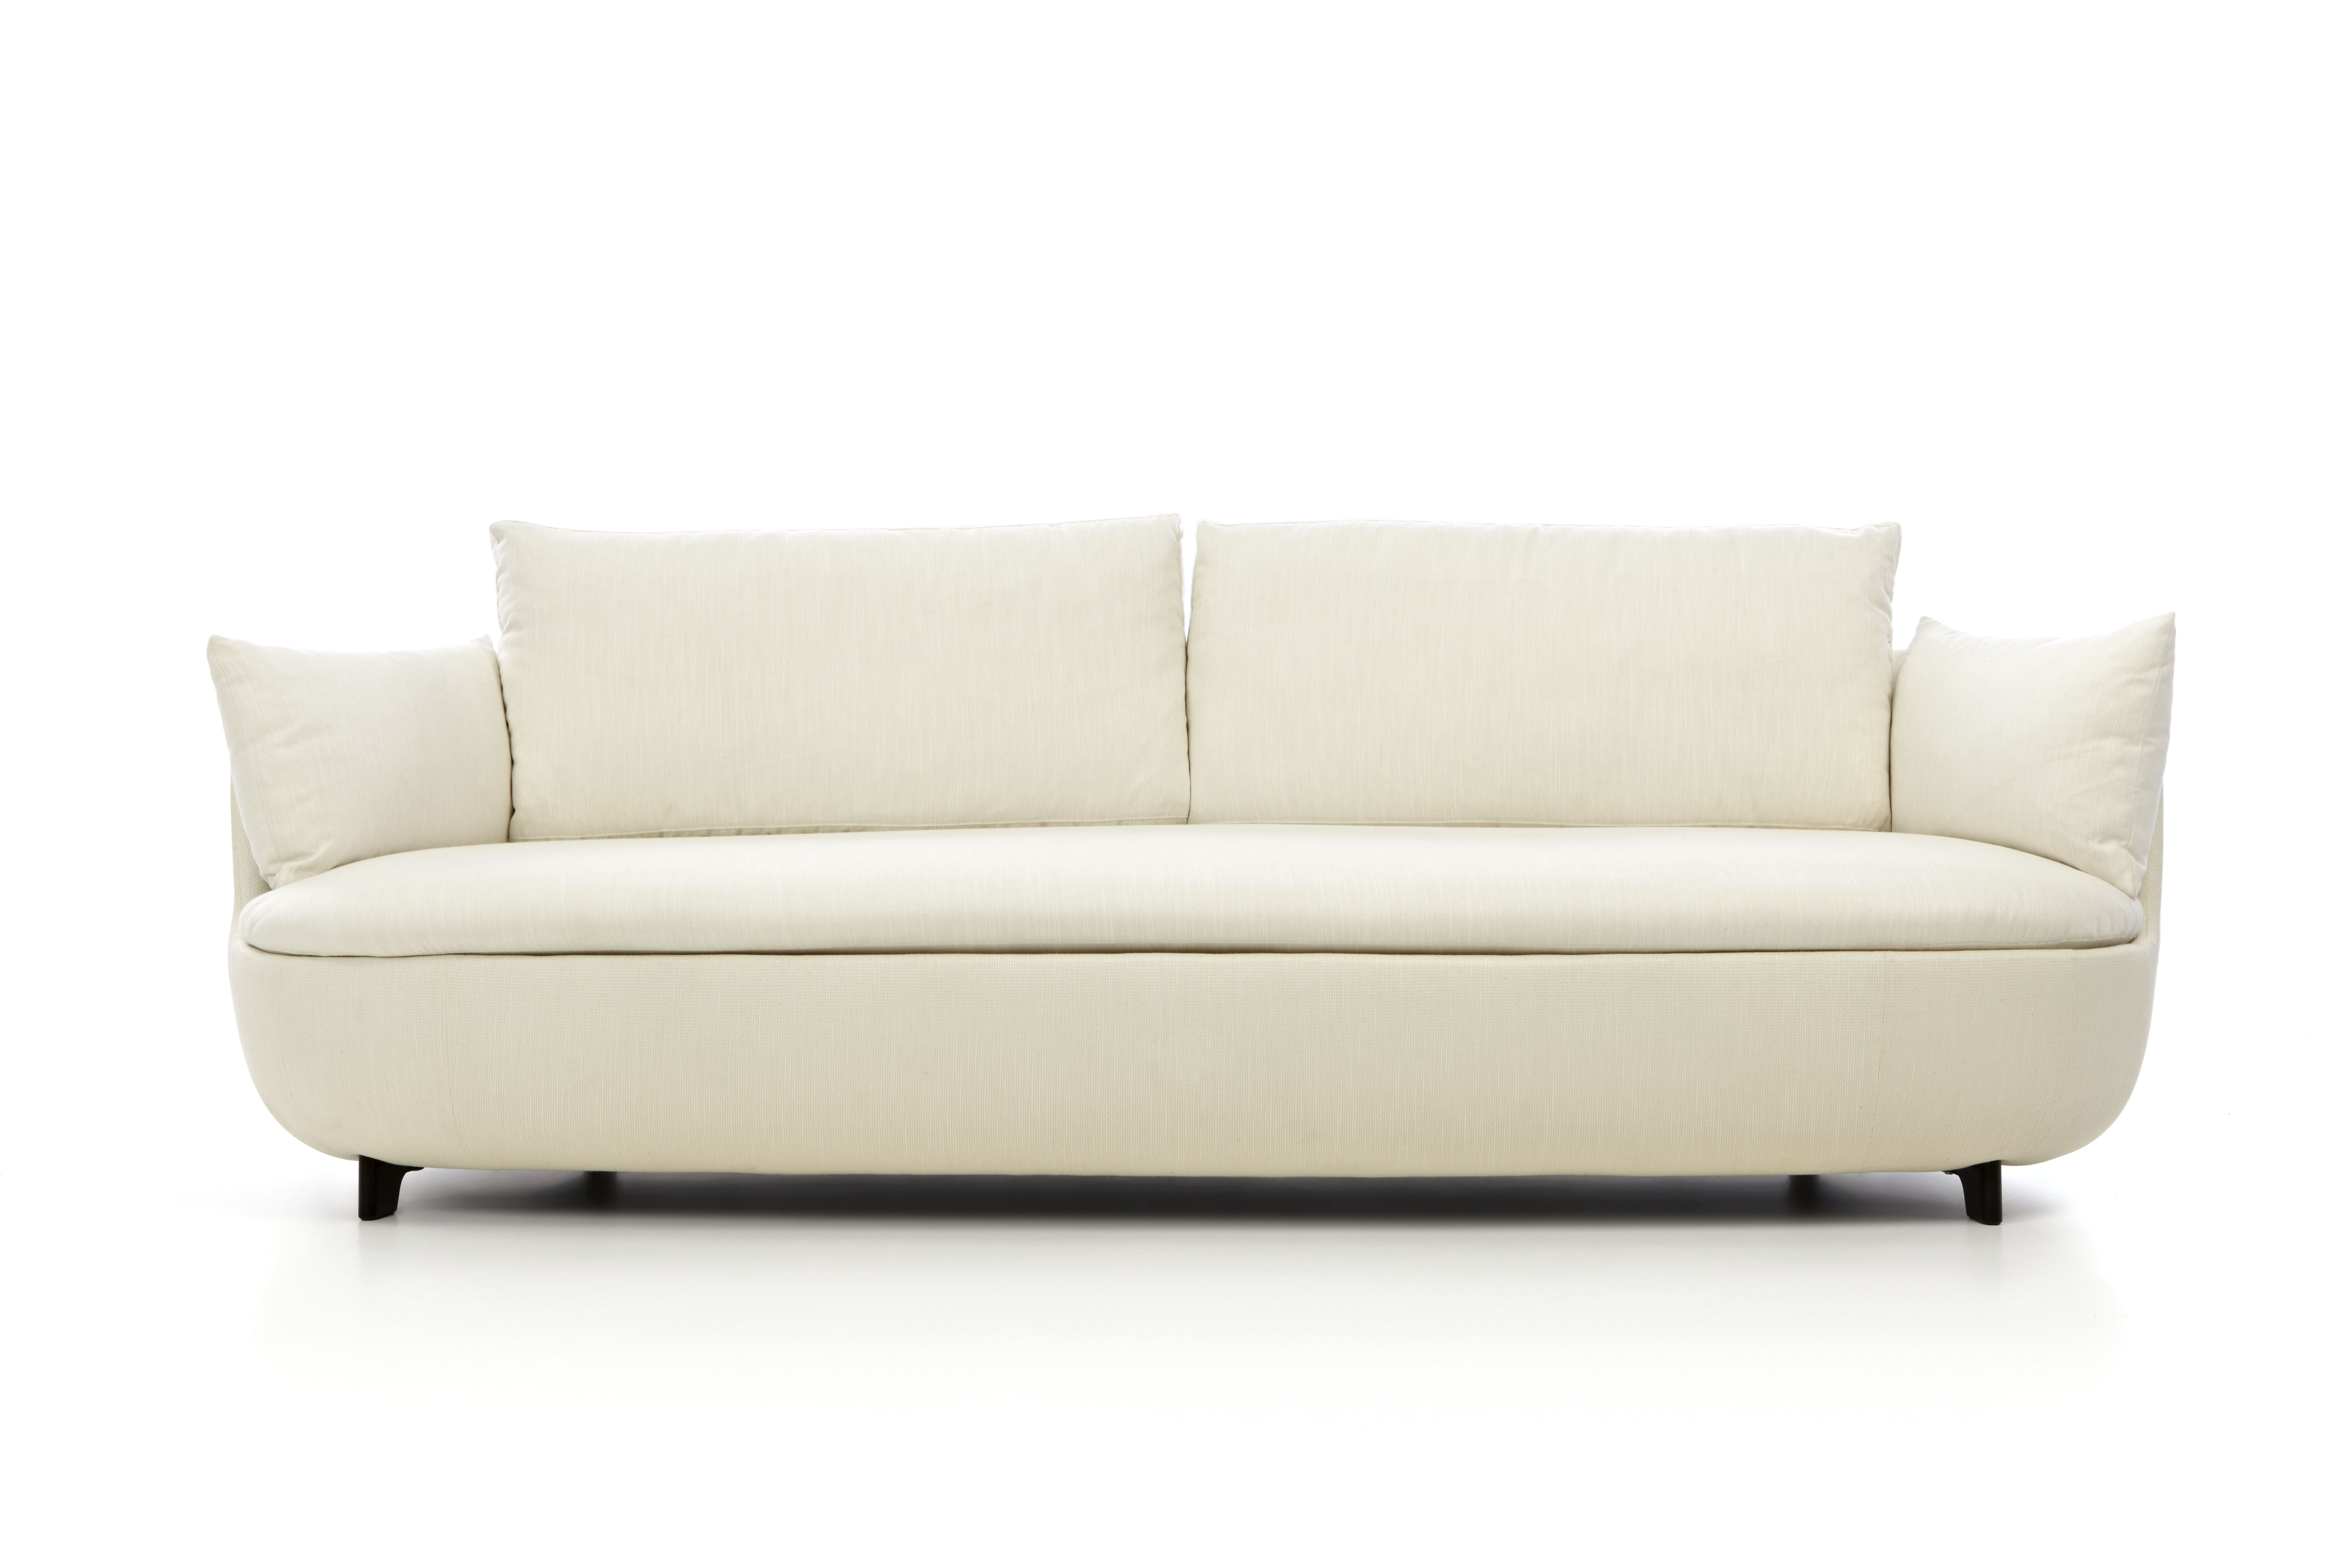 Moooi Bart Canapé Sofa | buy from Campbell Watson UK